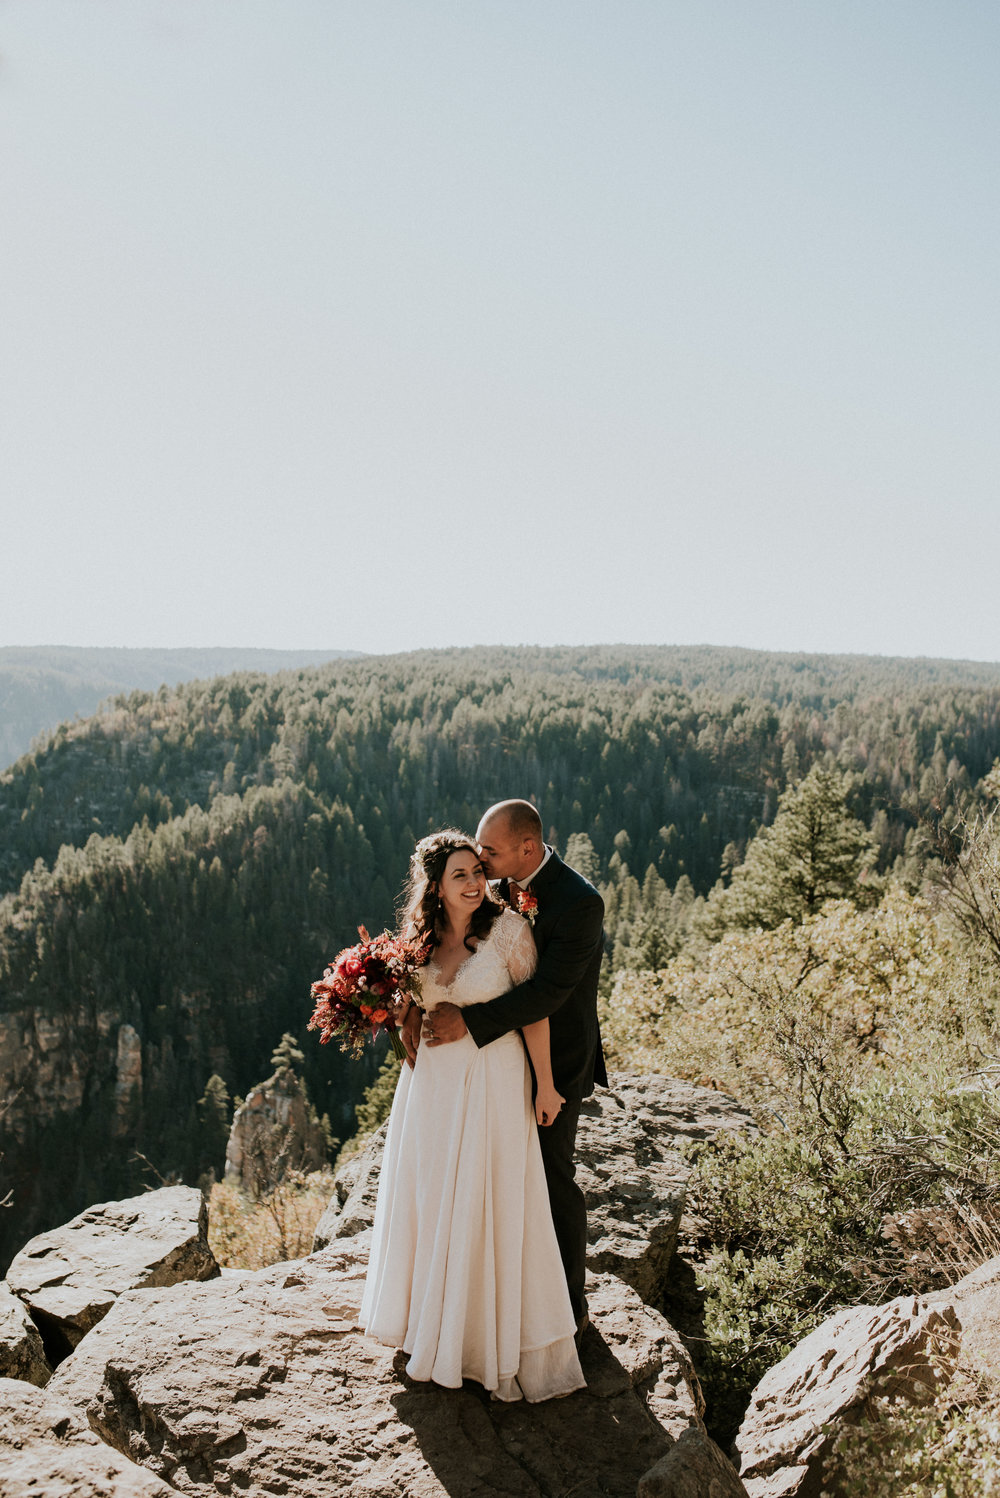 Intimate Adventure Sedona Elopement-4.jpg